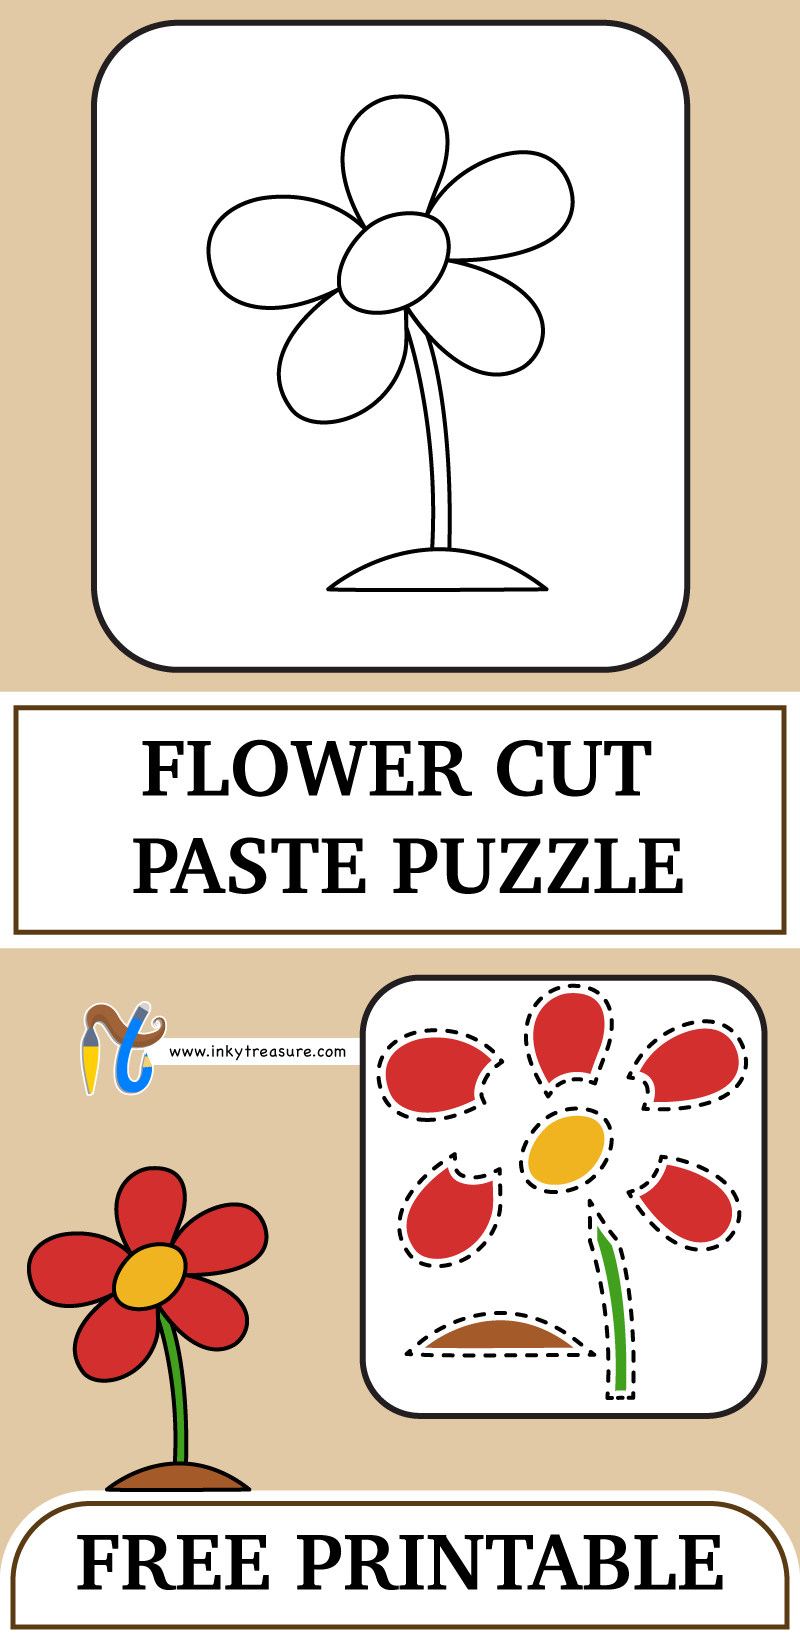 We Have Free Flower Cut And Paste Puzzle Printable For Kids.you Need - Printable Flower Puzzle